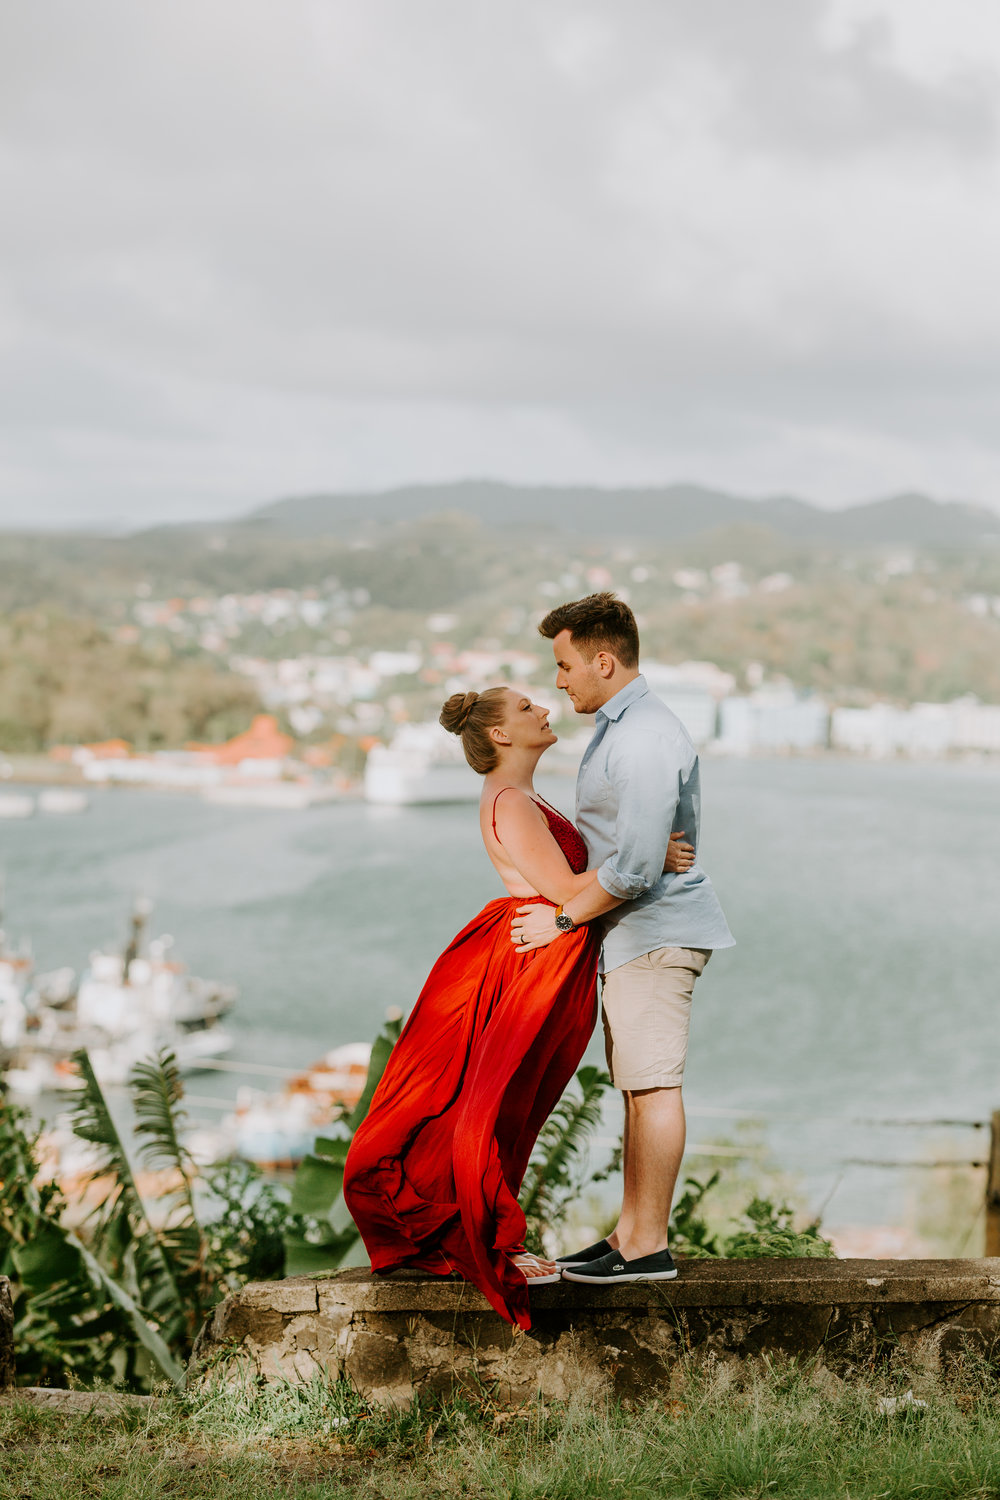 nicole-daacke-photography-st-lucia-destination-wedding-photographer-day-after-session-castries-sandals-resort-adventure-island-engagement-soufriere-piton-adventure-session-photos-photographer-7.jpg